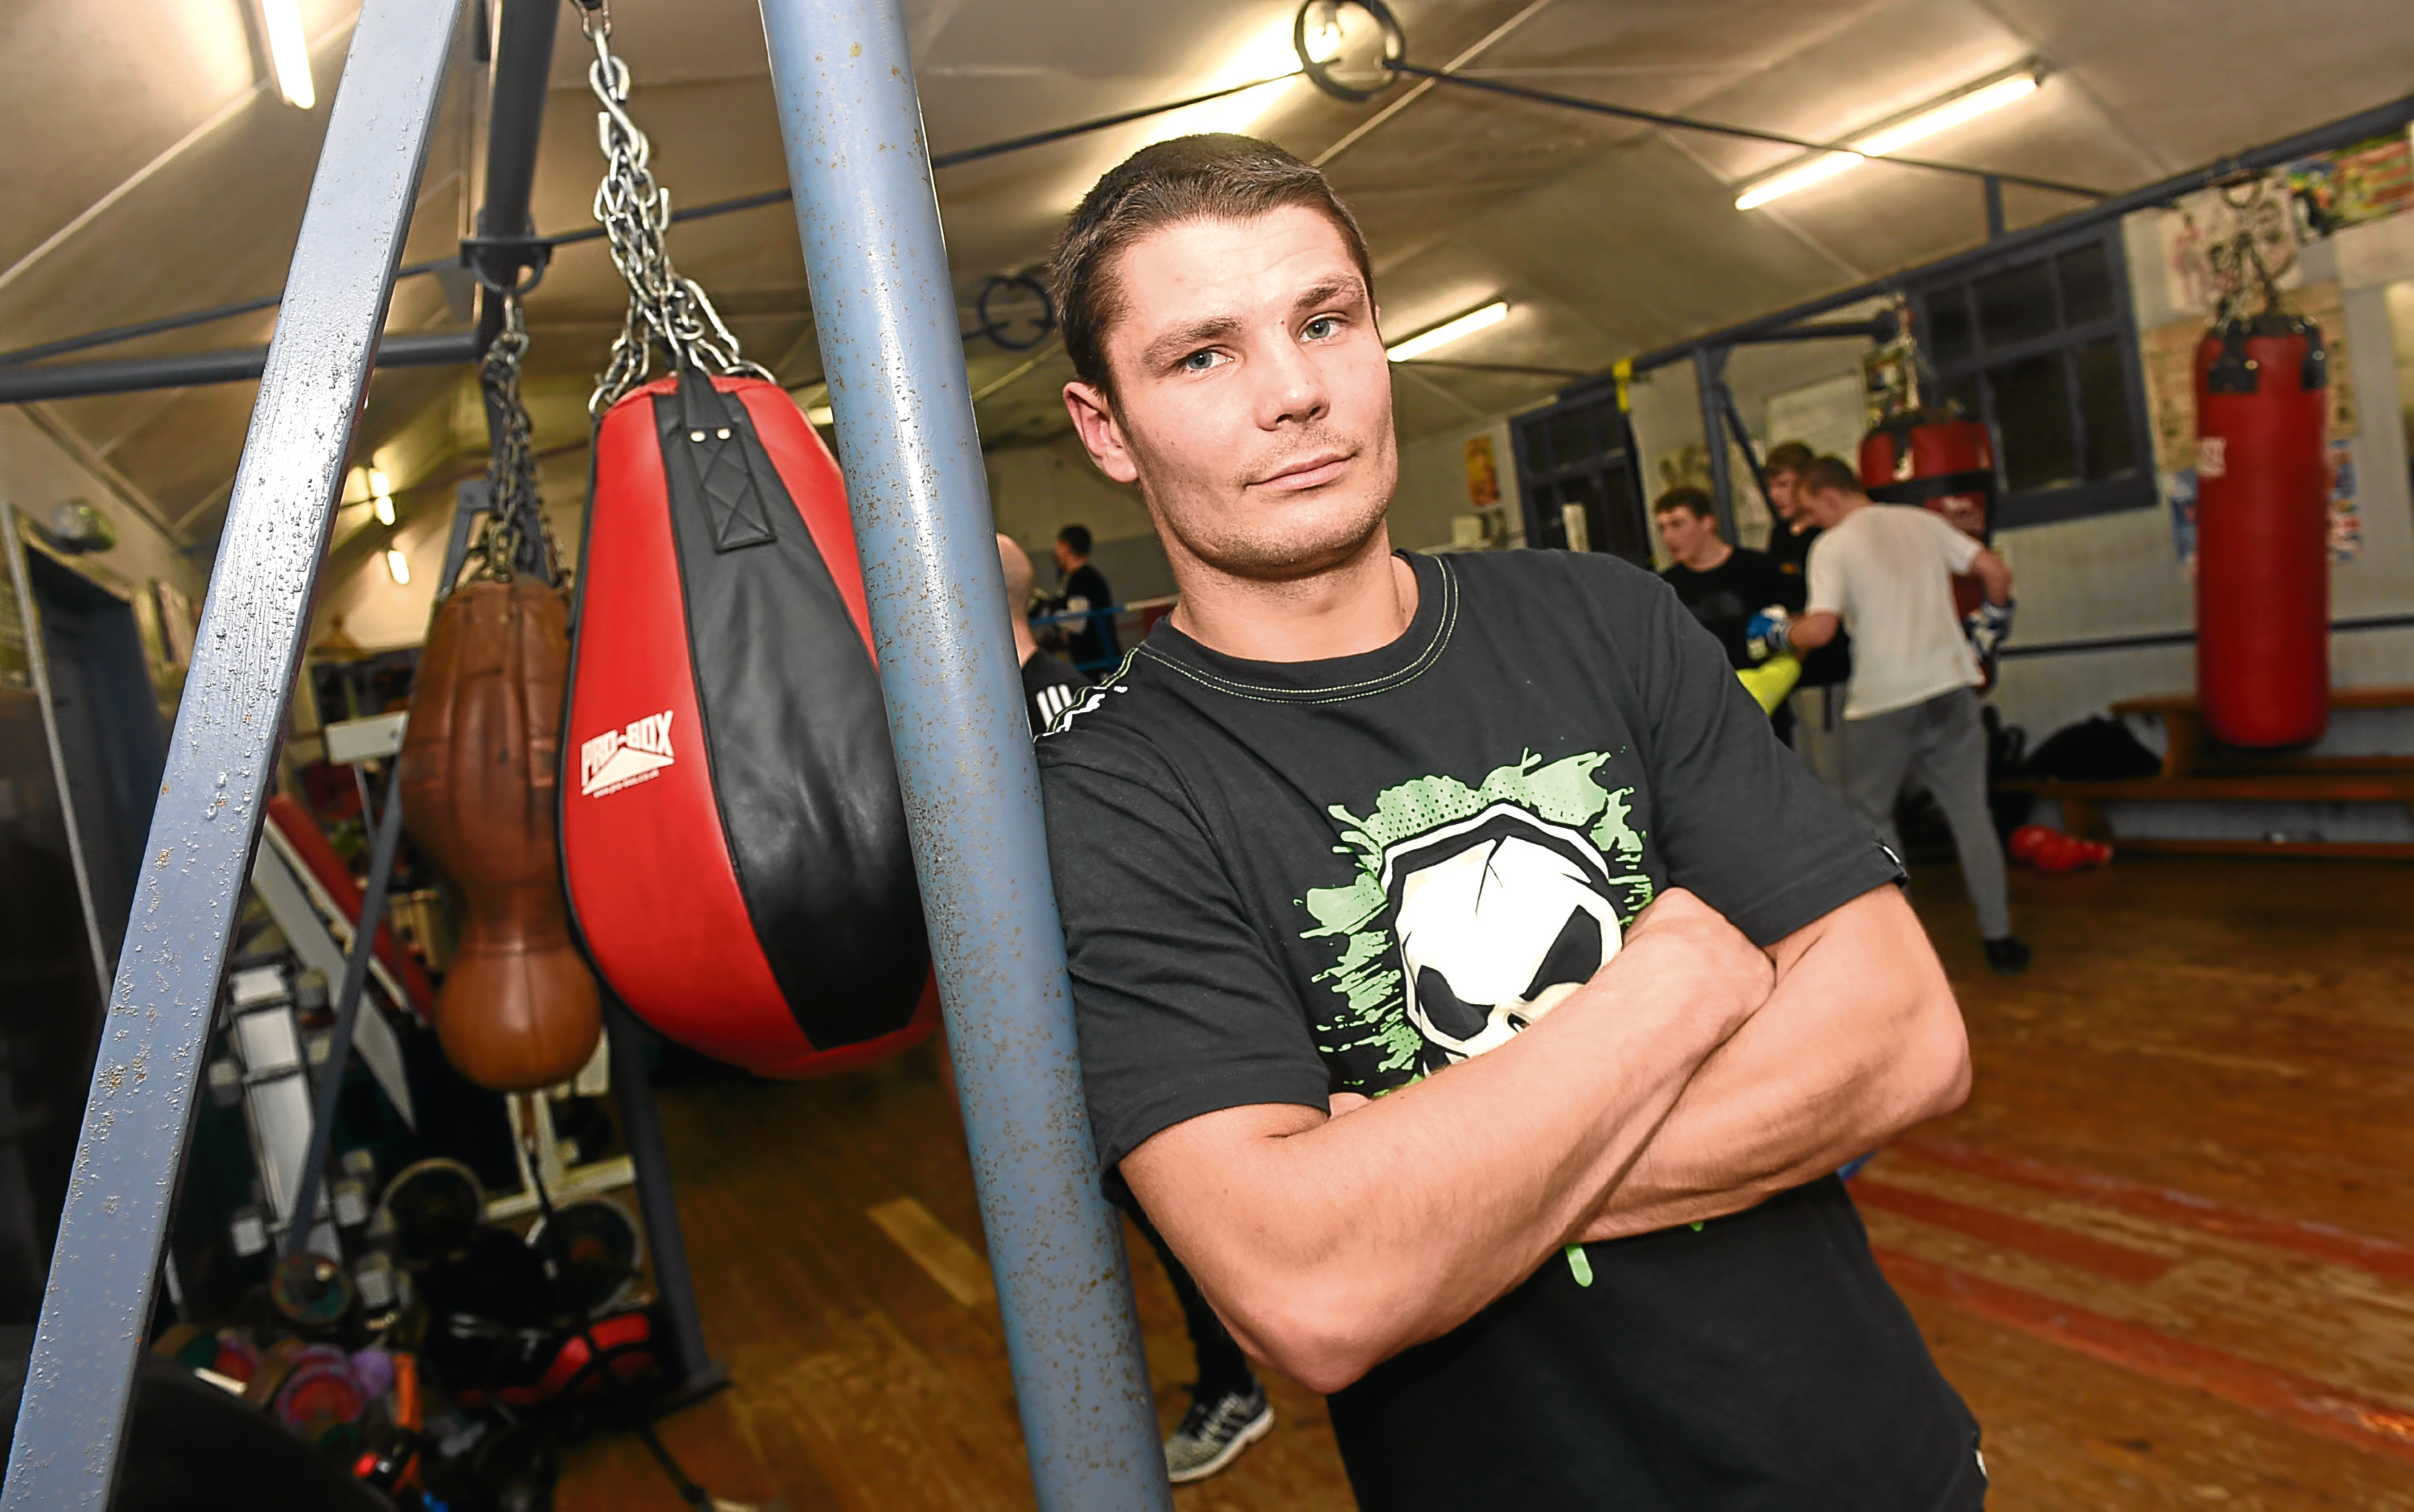 Marek Laskowski at Granite City Boxing Gym, Clifton Lane, Aberdeen. Picture by Heather Fowlie